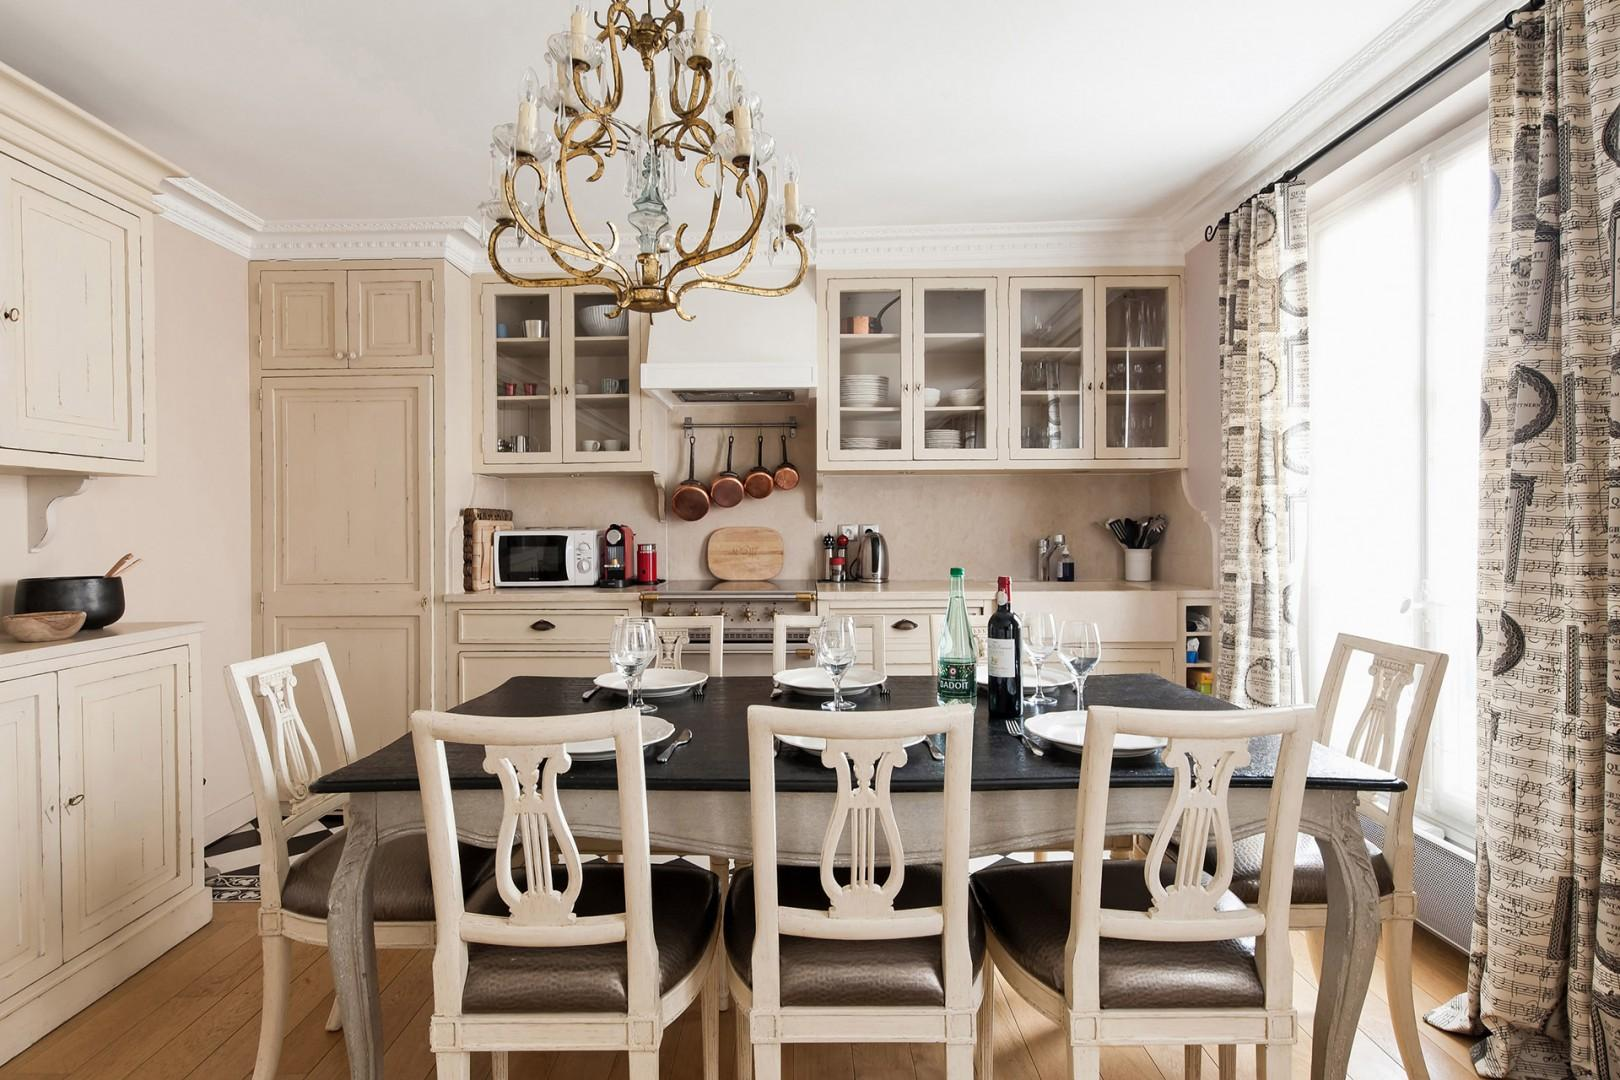 Enjoy beautiful dinners in your Parisian home away from home.